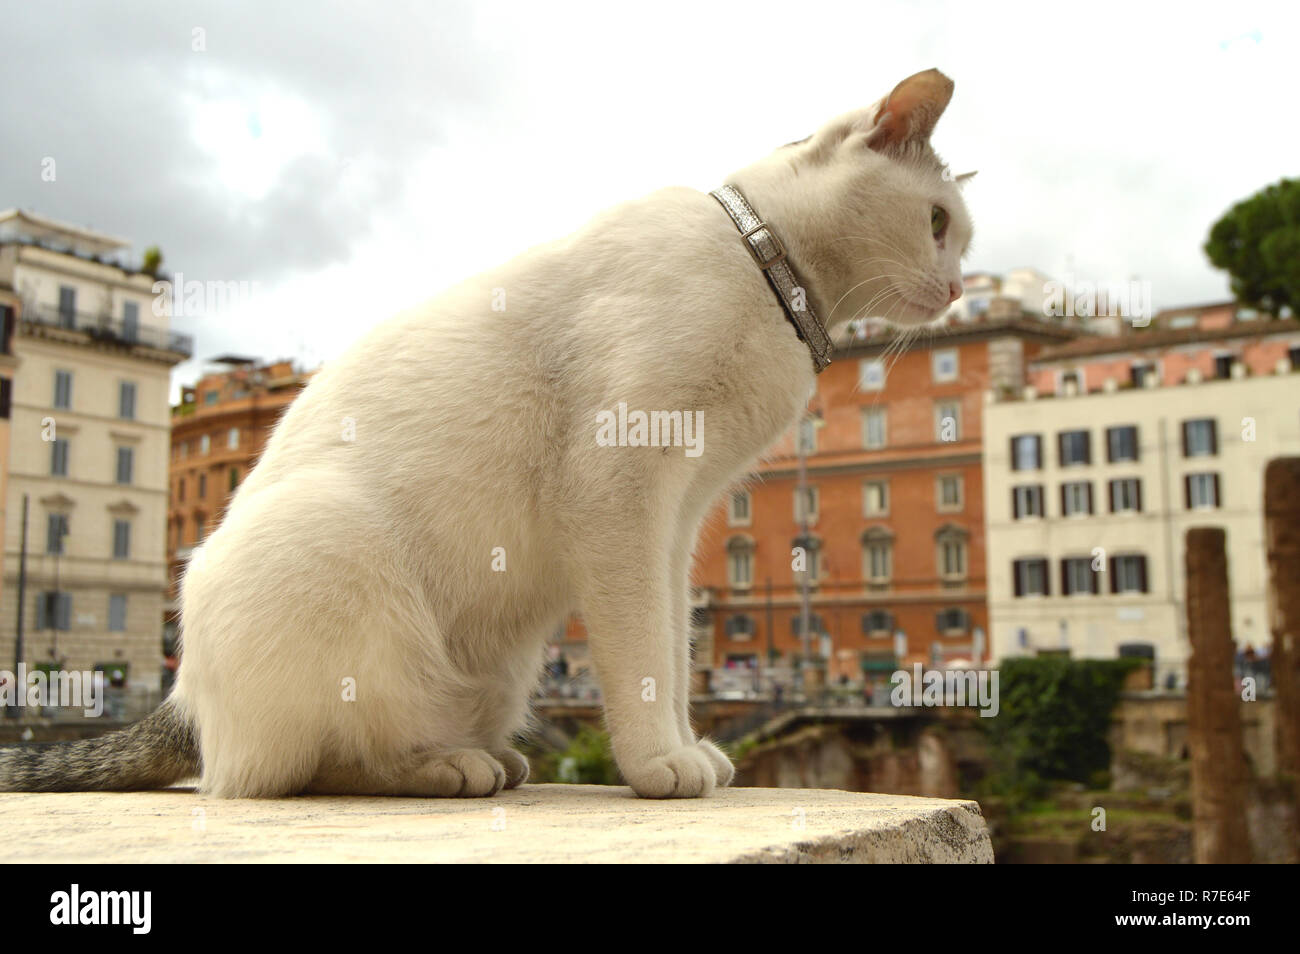 Cute white cat sitting on the square Largo di Torre Argentina. In the ancient Roman ruins on the site of the murder of Gaius Julius Caesar lives a lot of homeless cats. - Stock Image